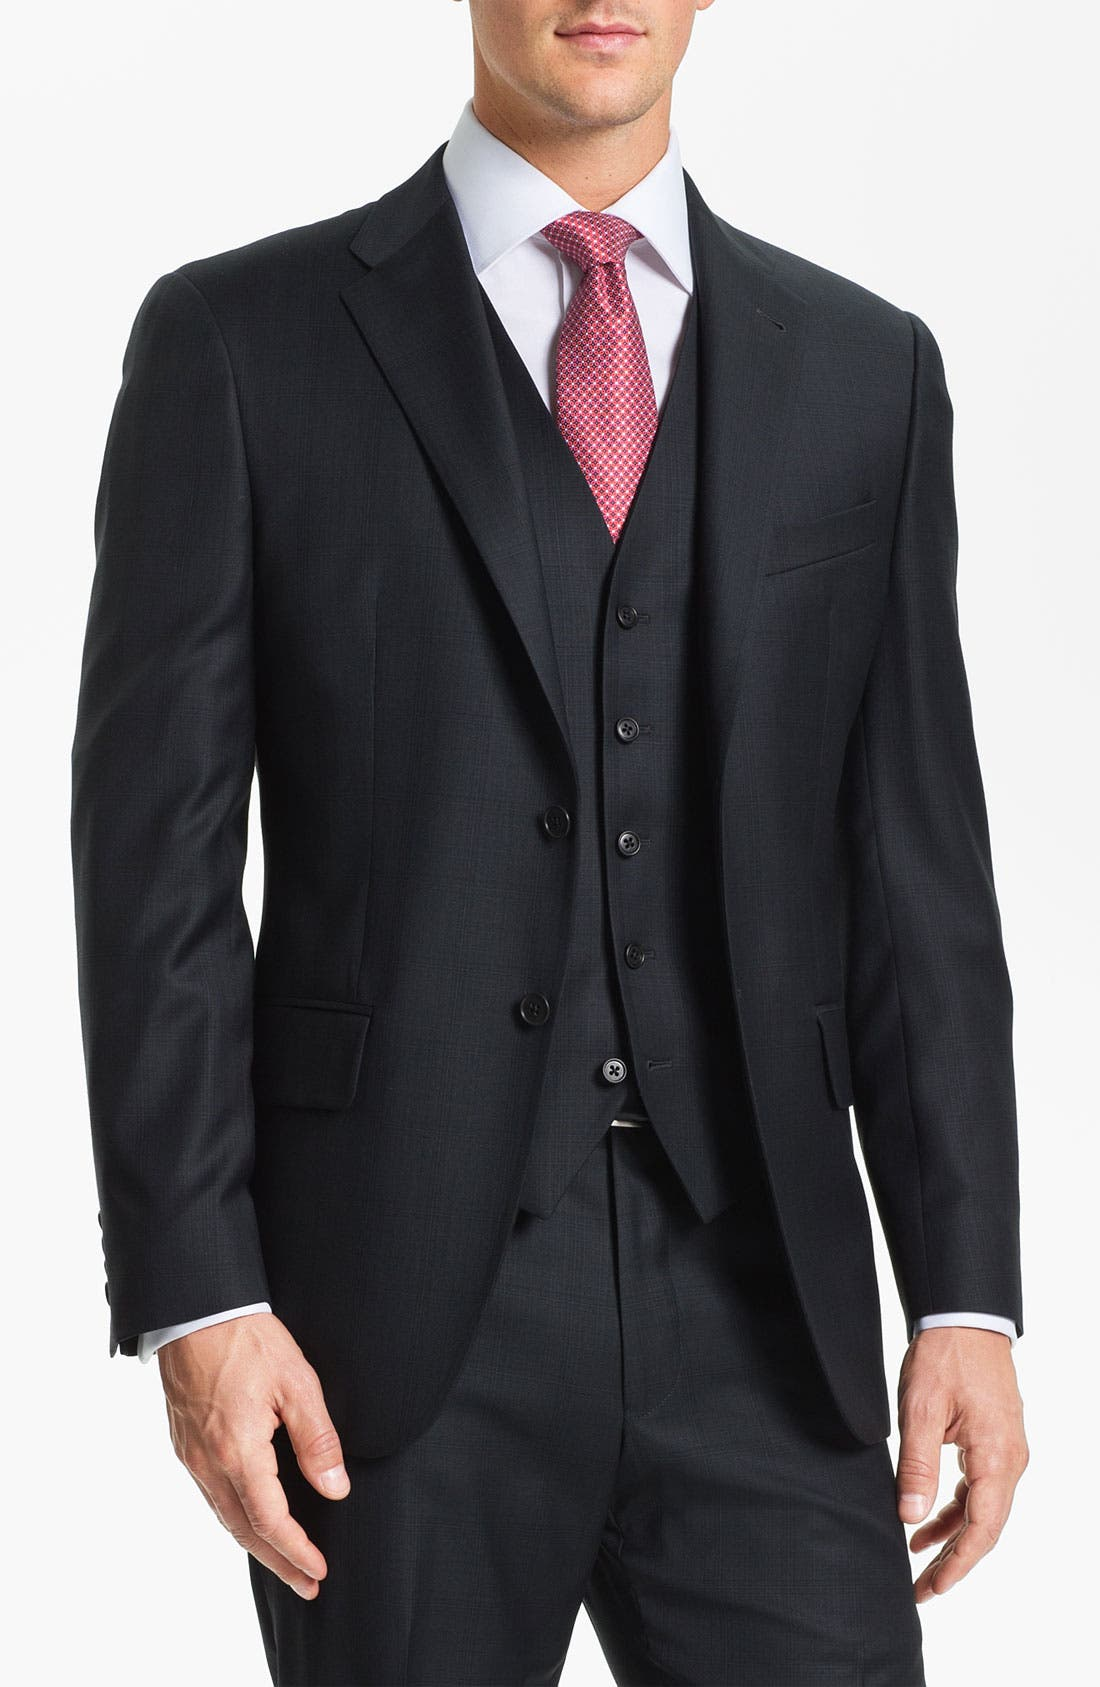 Main Image - Joseph Abboud Trim Fit Three Piece Suit